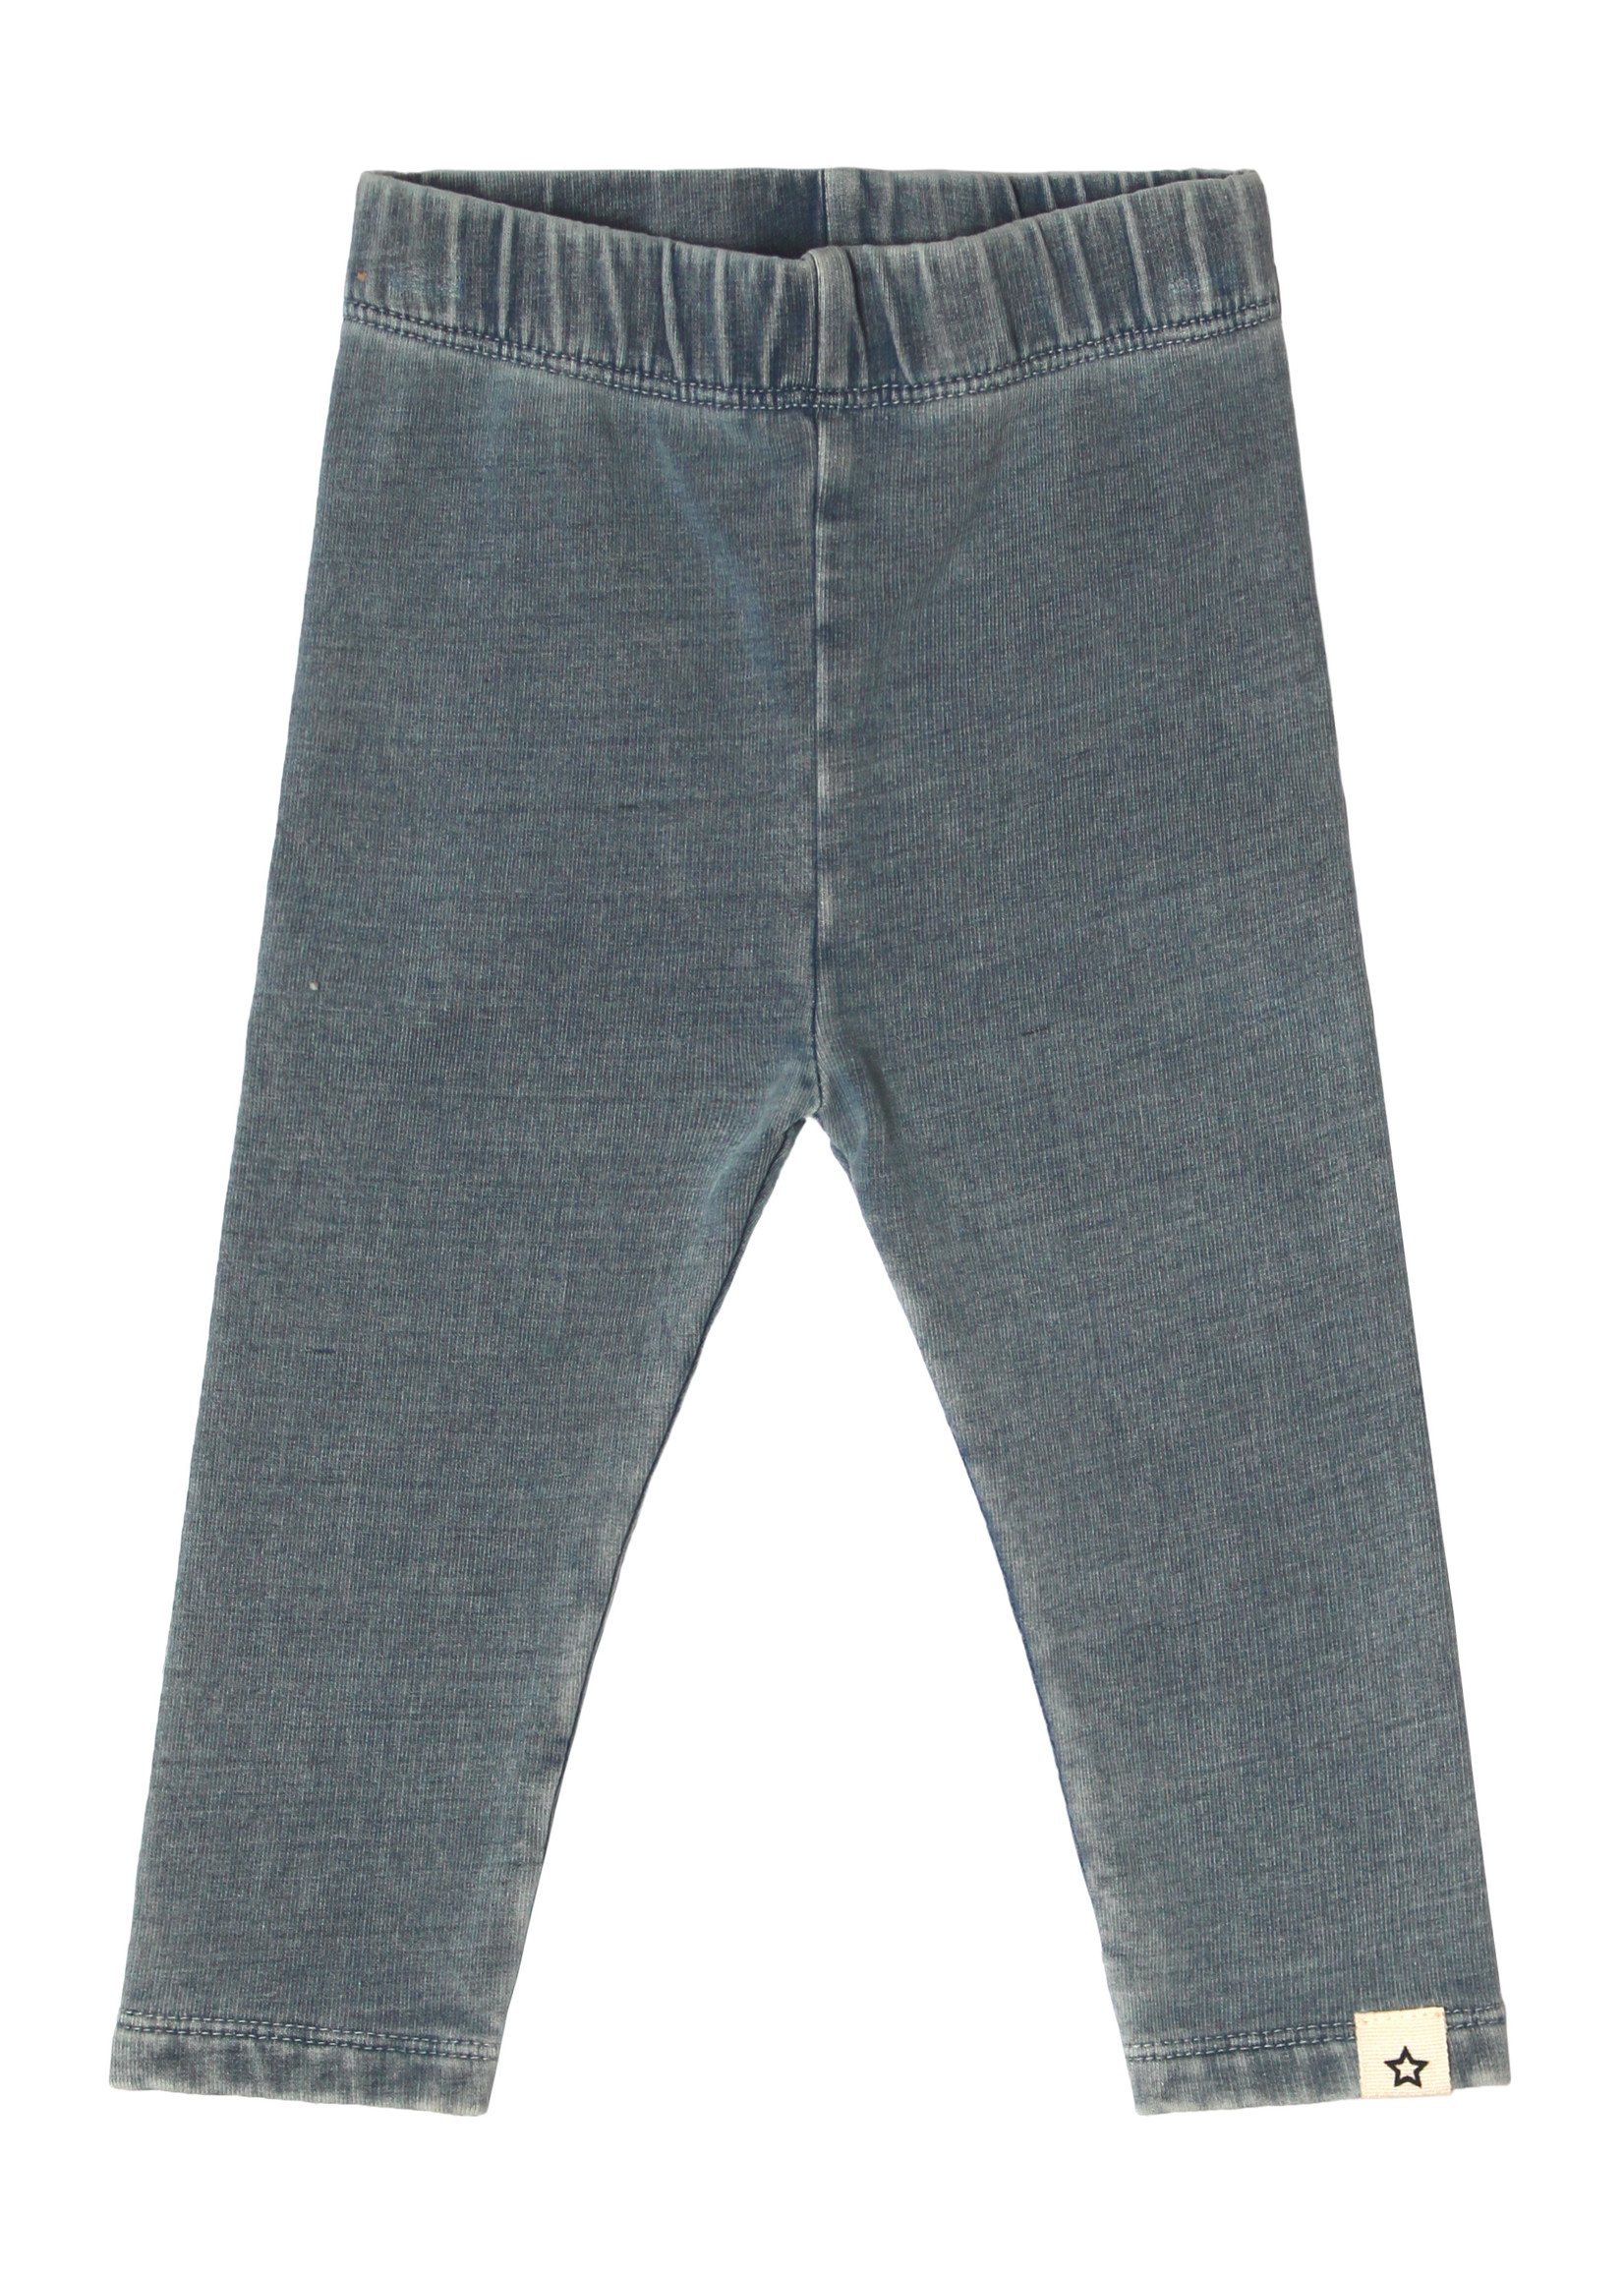 Your Wishes YW - Knitted Denim | Legging